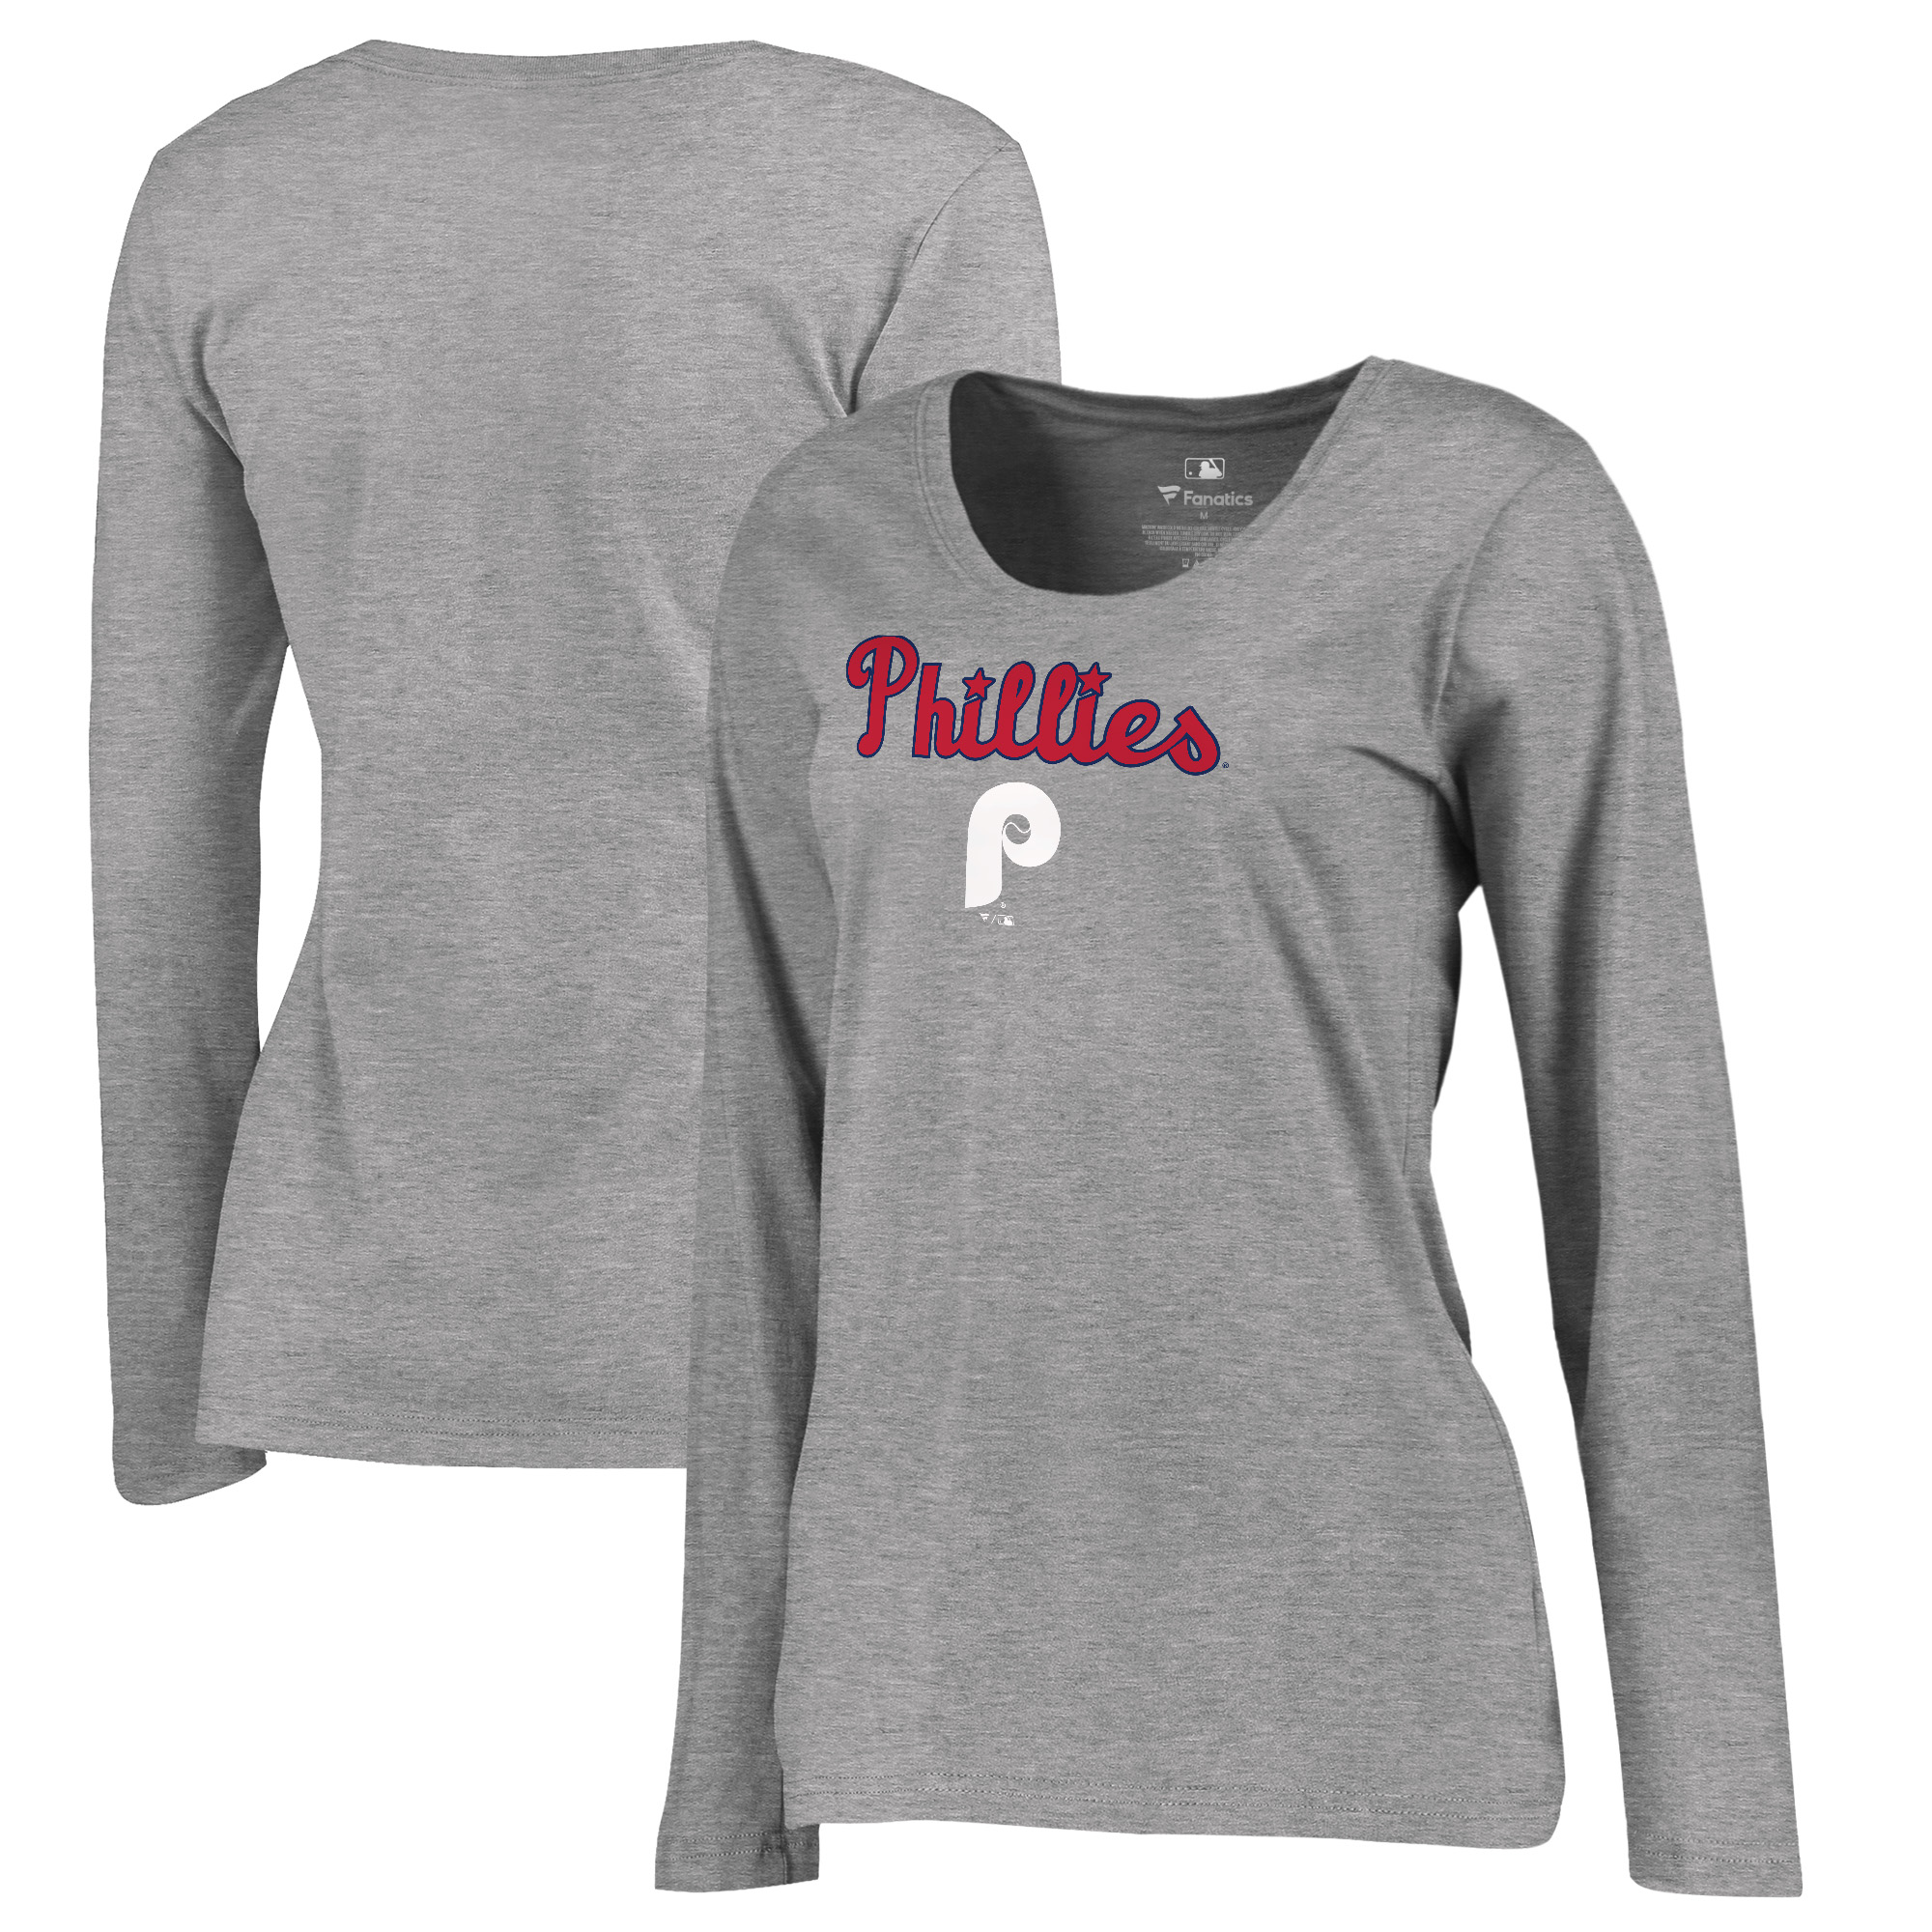 Philadelphia Phillies Fanatics Branded Women's Plus Size Cooperstown Collection Wahconah Long Sleeve T-Shirt - Heathered Gray